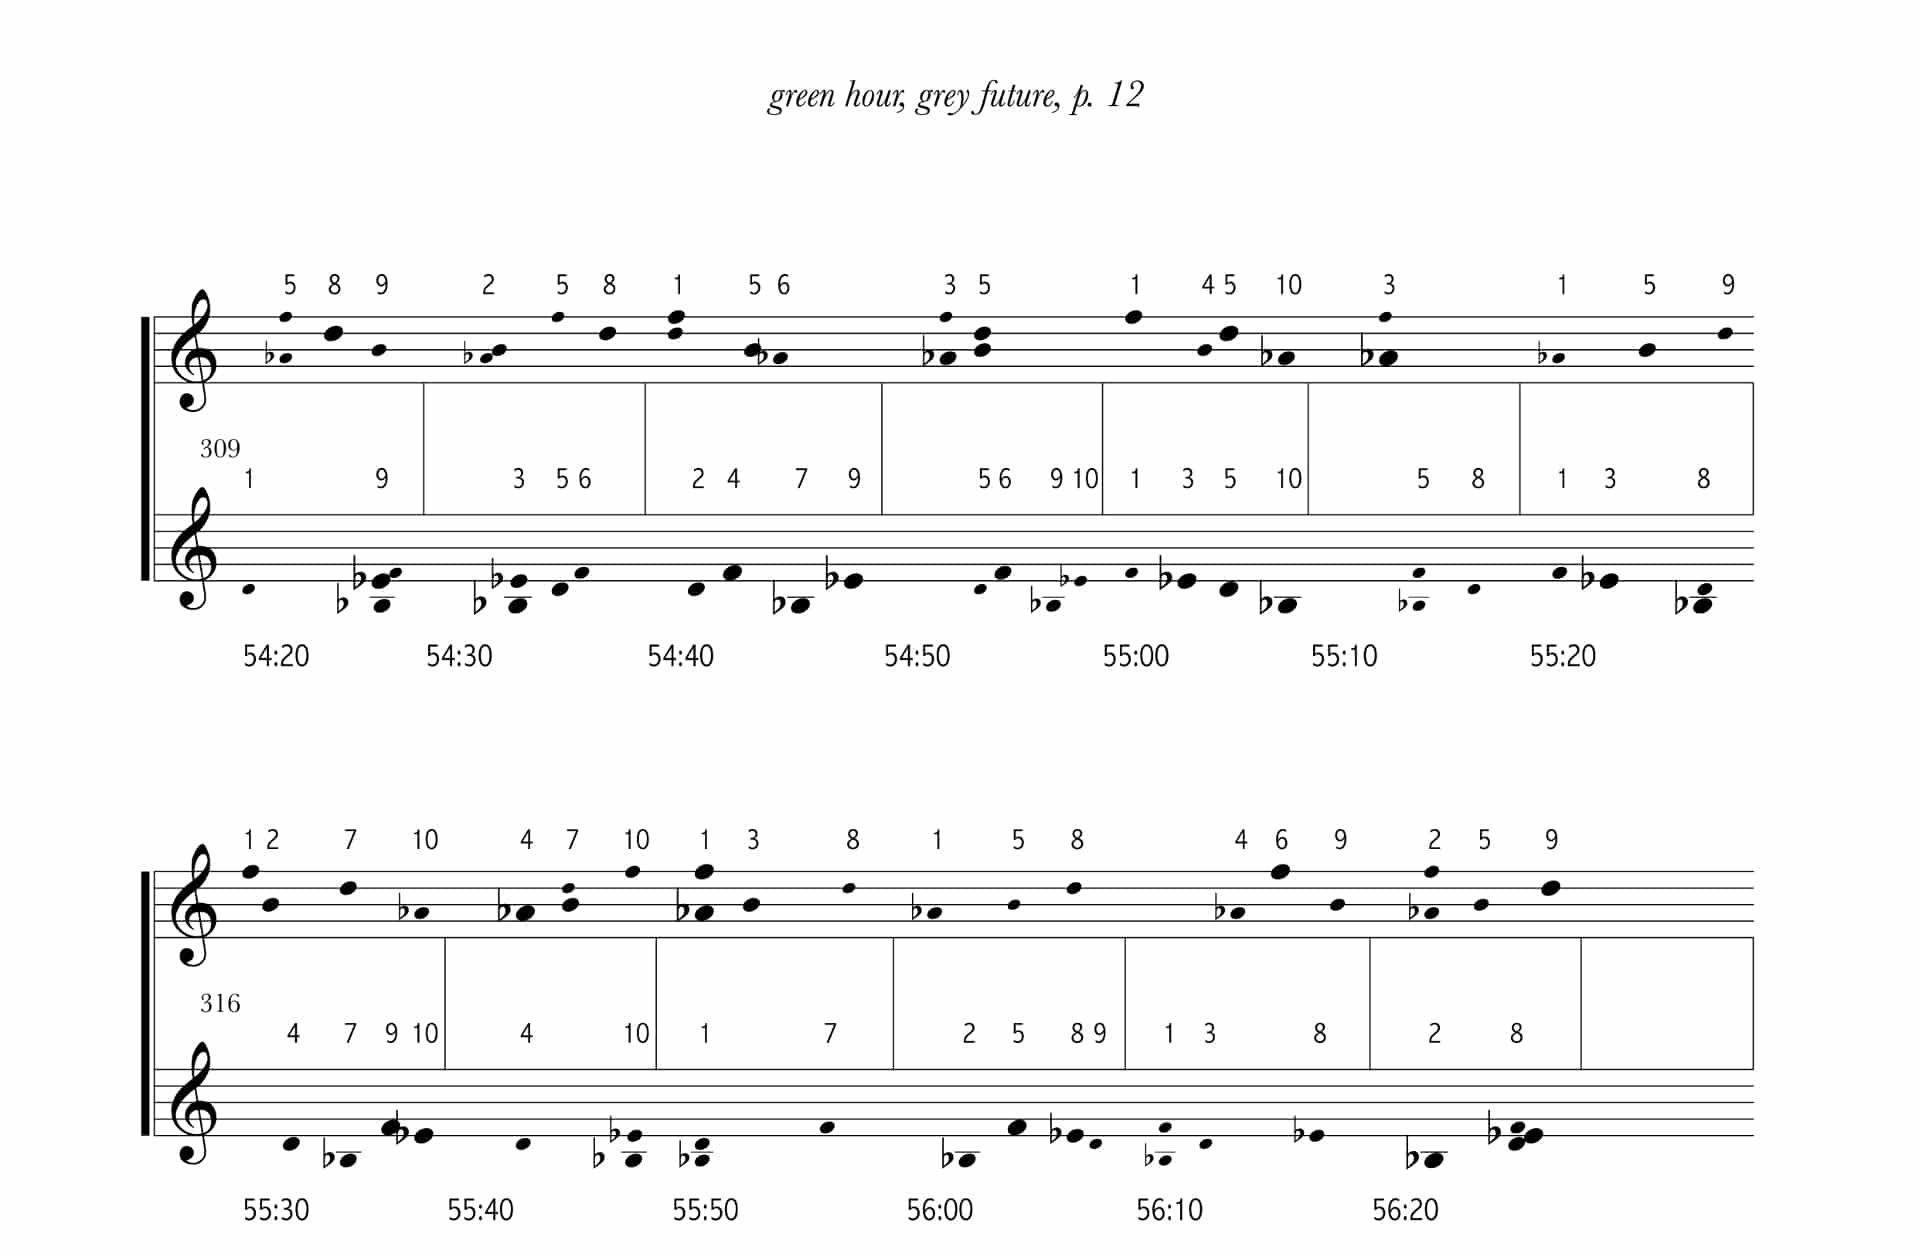 Michael Pisaro - excerpt from green hour, grey future score